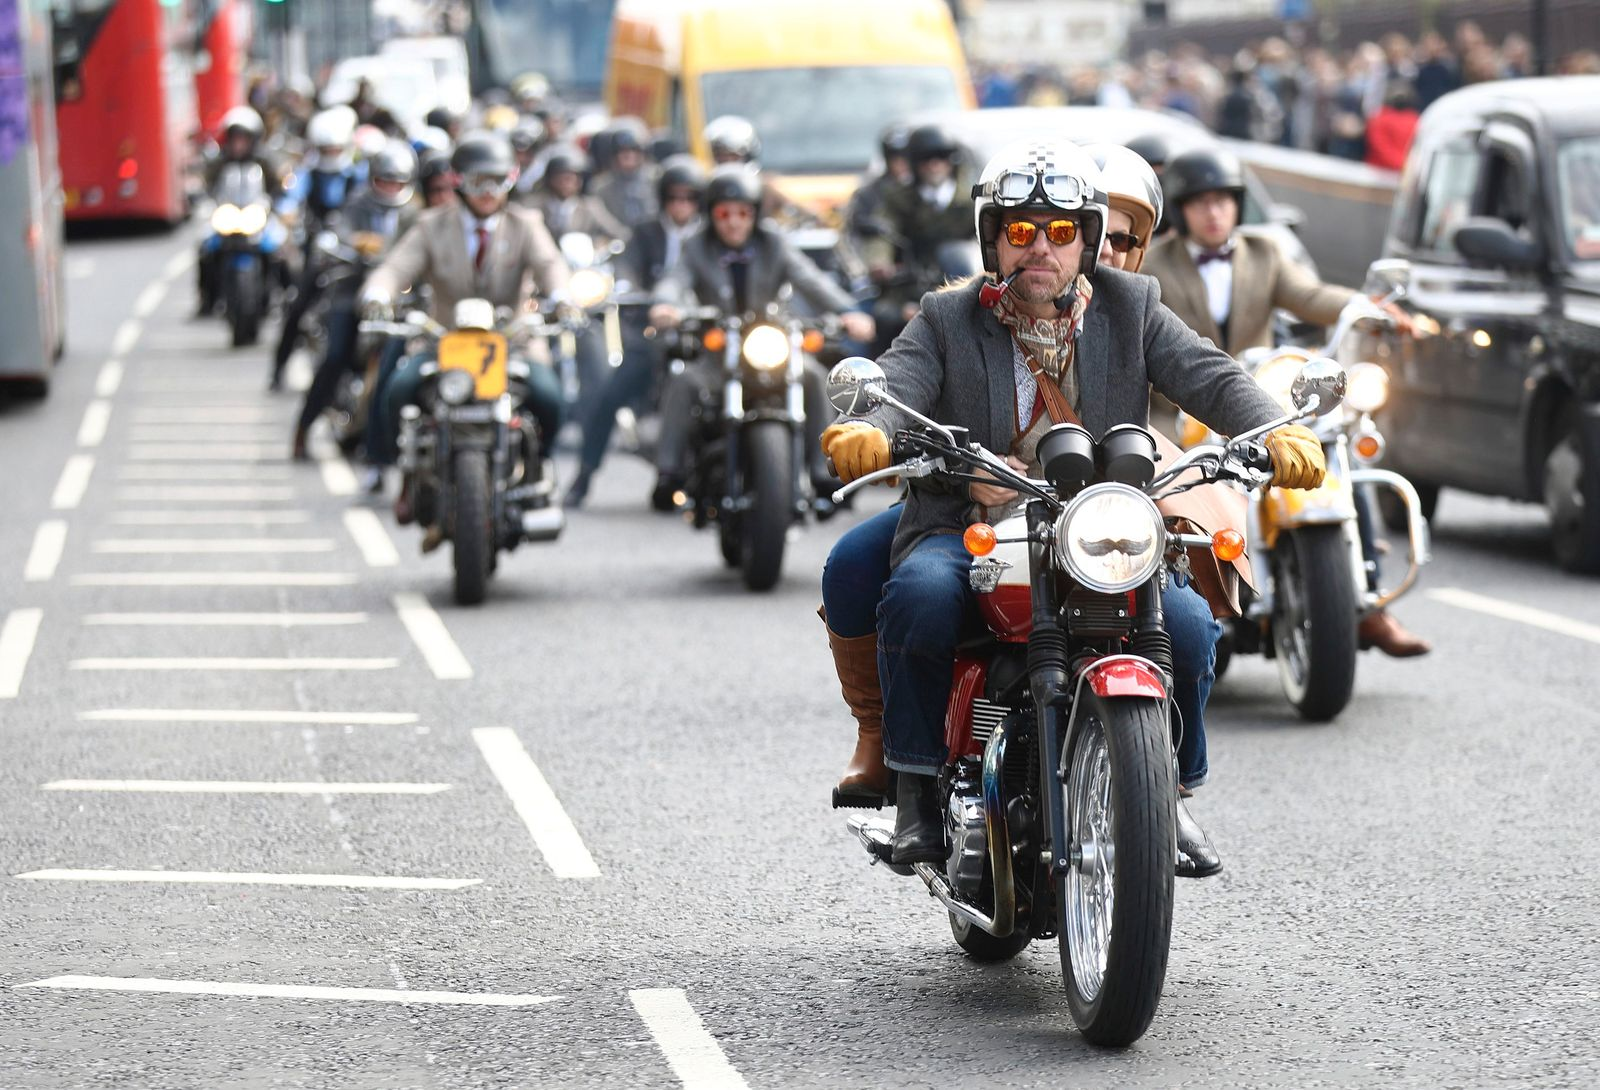 The Distinguished Gentleman's Ride Through London To Raise Awareness And Help Fund The Cure For Prostate Cancer, Sponsored By Zenith Watches